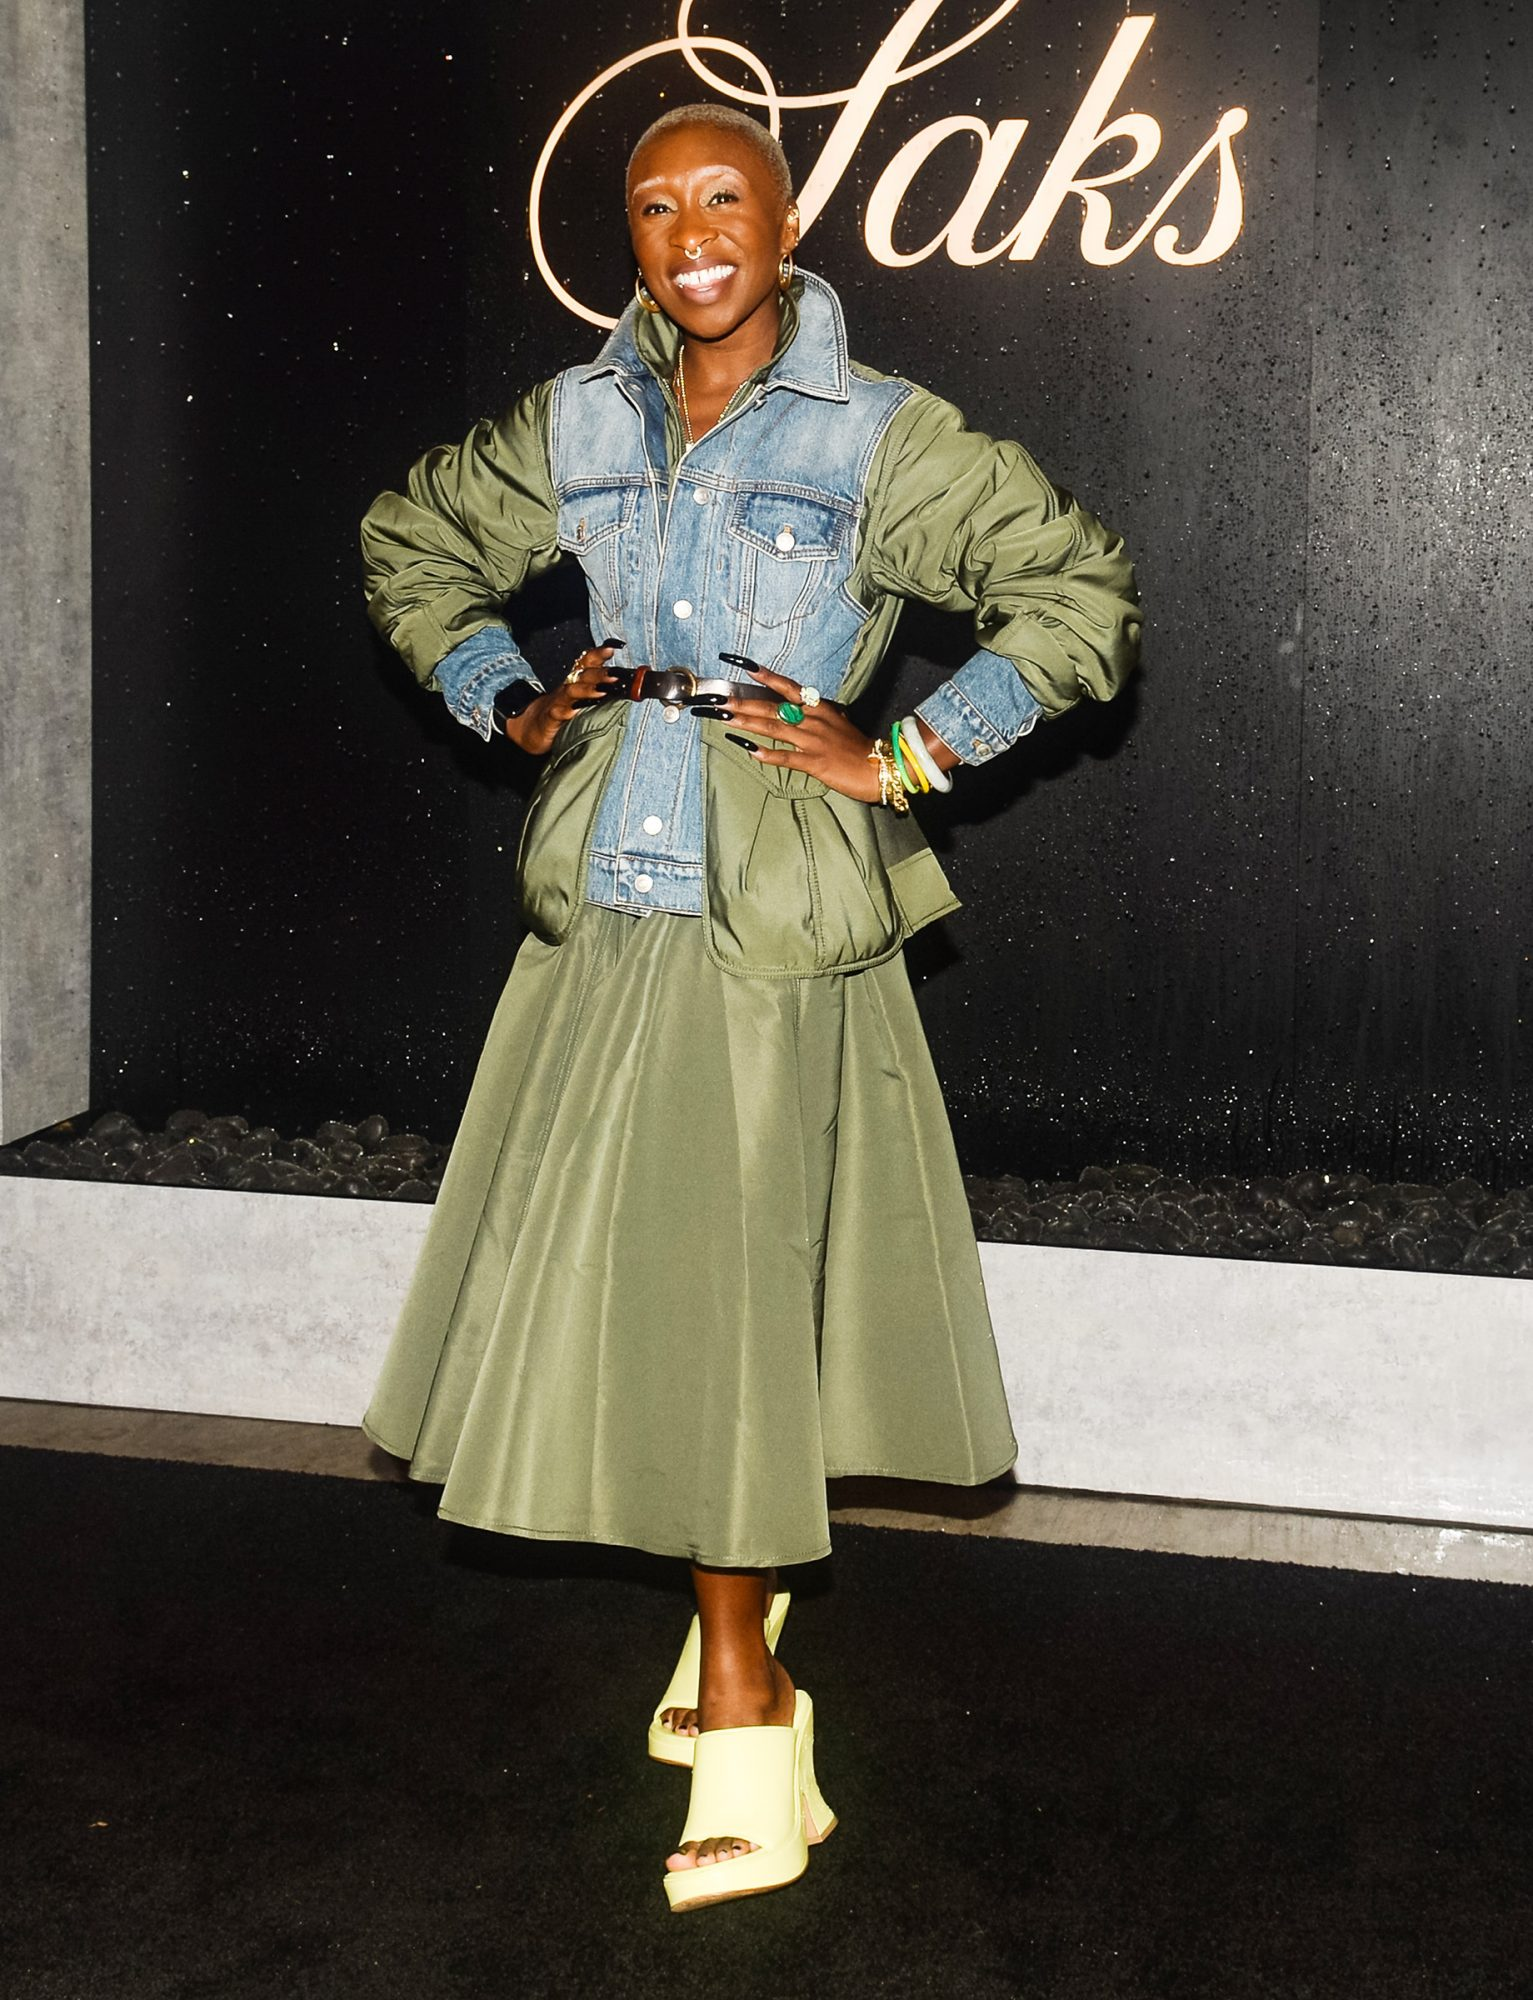 Cynthia Erivo attends Saks and Cynthia Erivo Celebrate Summer in the Hamptons at Parrish Art Museum, Water Mill, New York on July 14, 2021